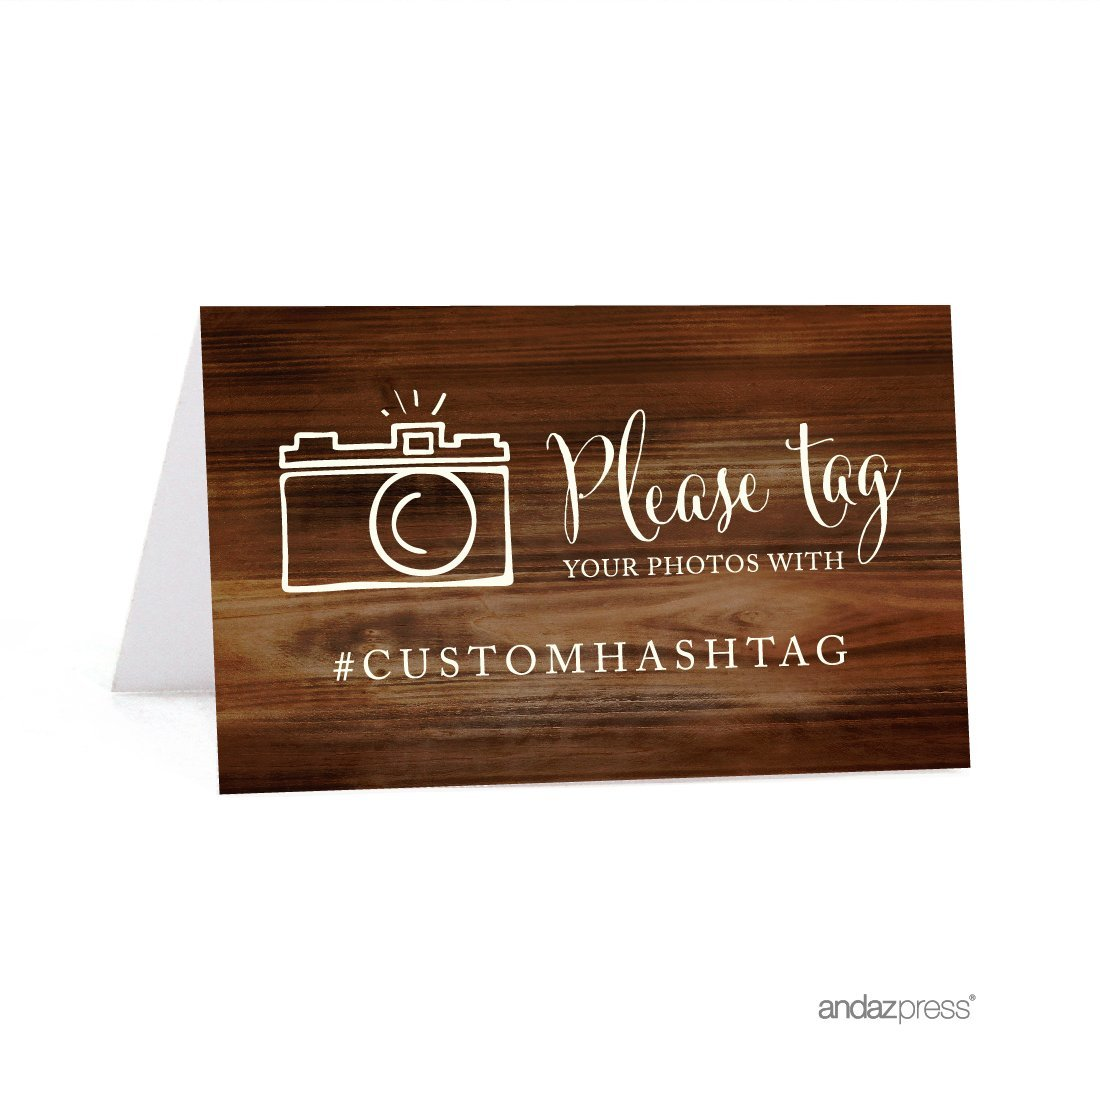 Andaz Press Personalized Hashtag Table Tent Place Cards, Double-Sided, Rustic Wood, 20-Pack, Custom Hashtag for Social Media Instagram Facebook Photo Tagging